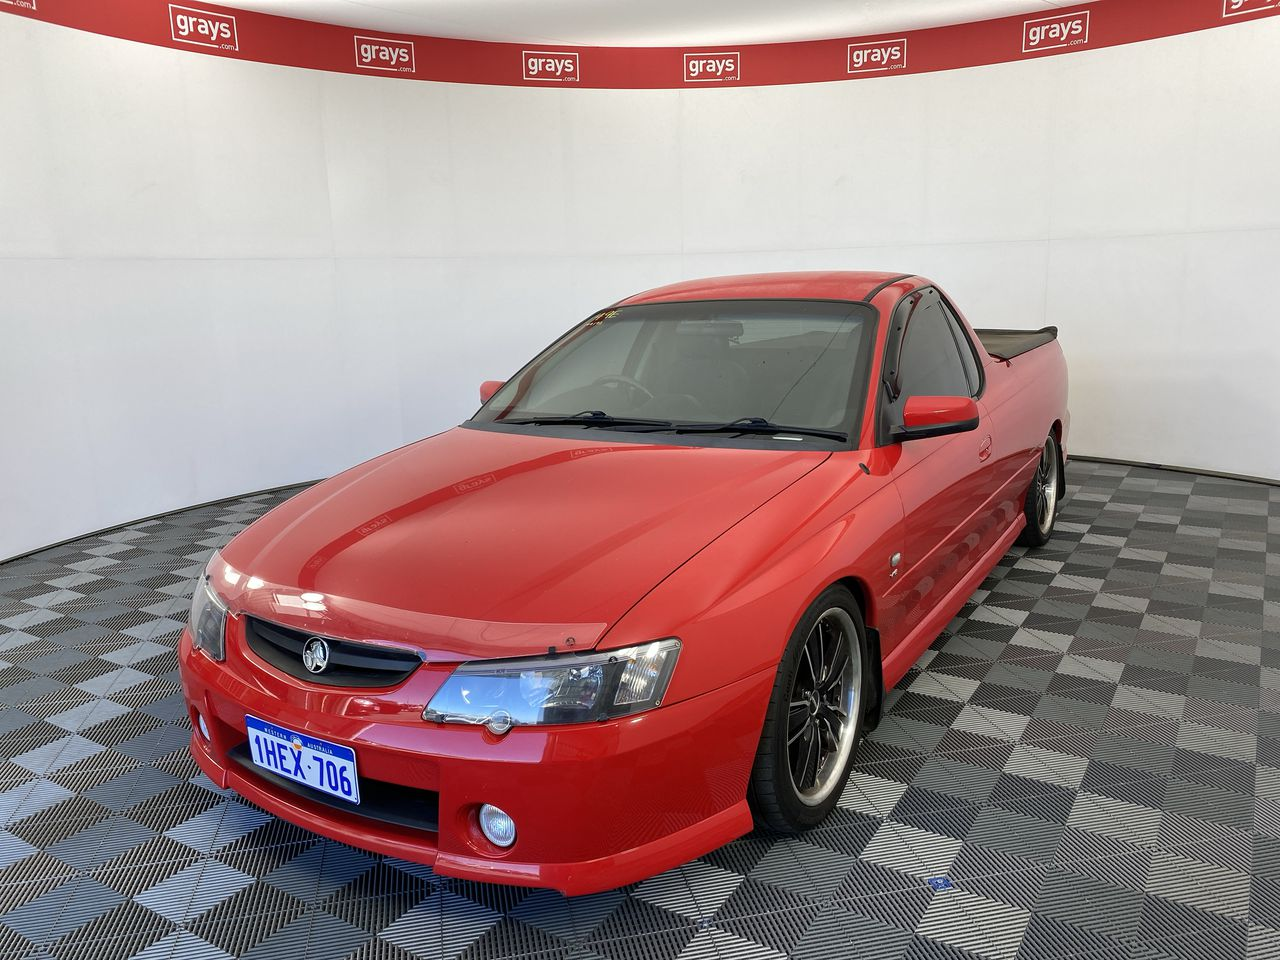 2004 Holden Commodore S Y Series Automatic Ute